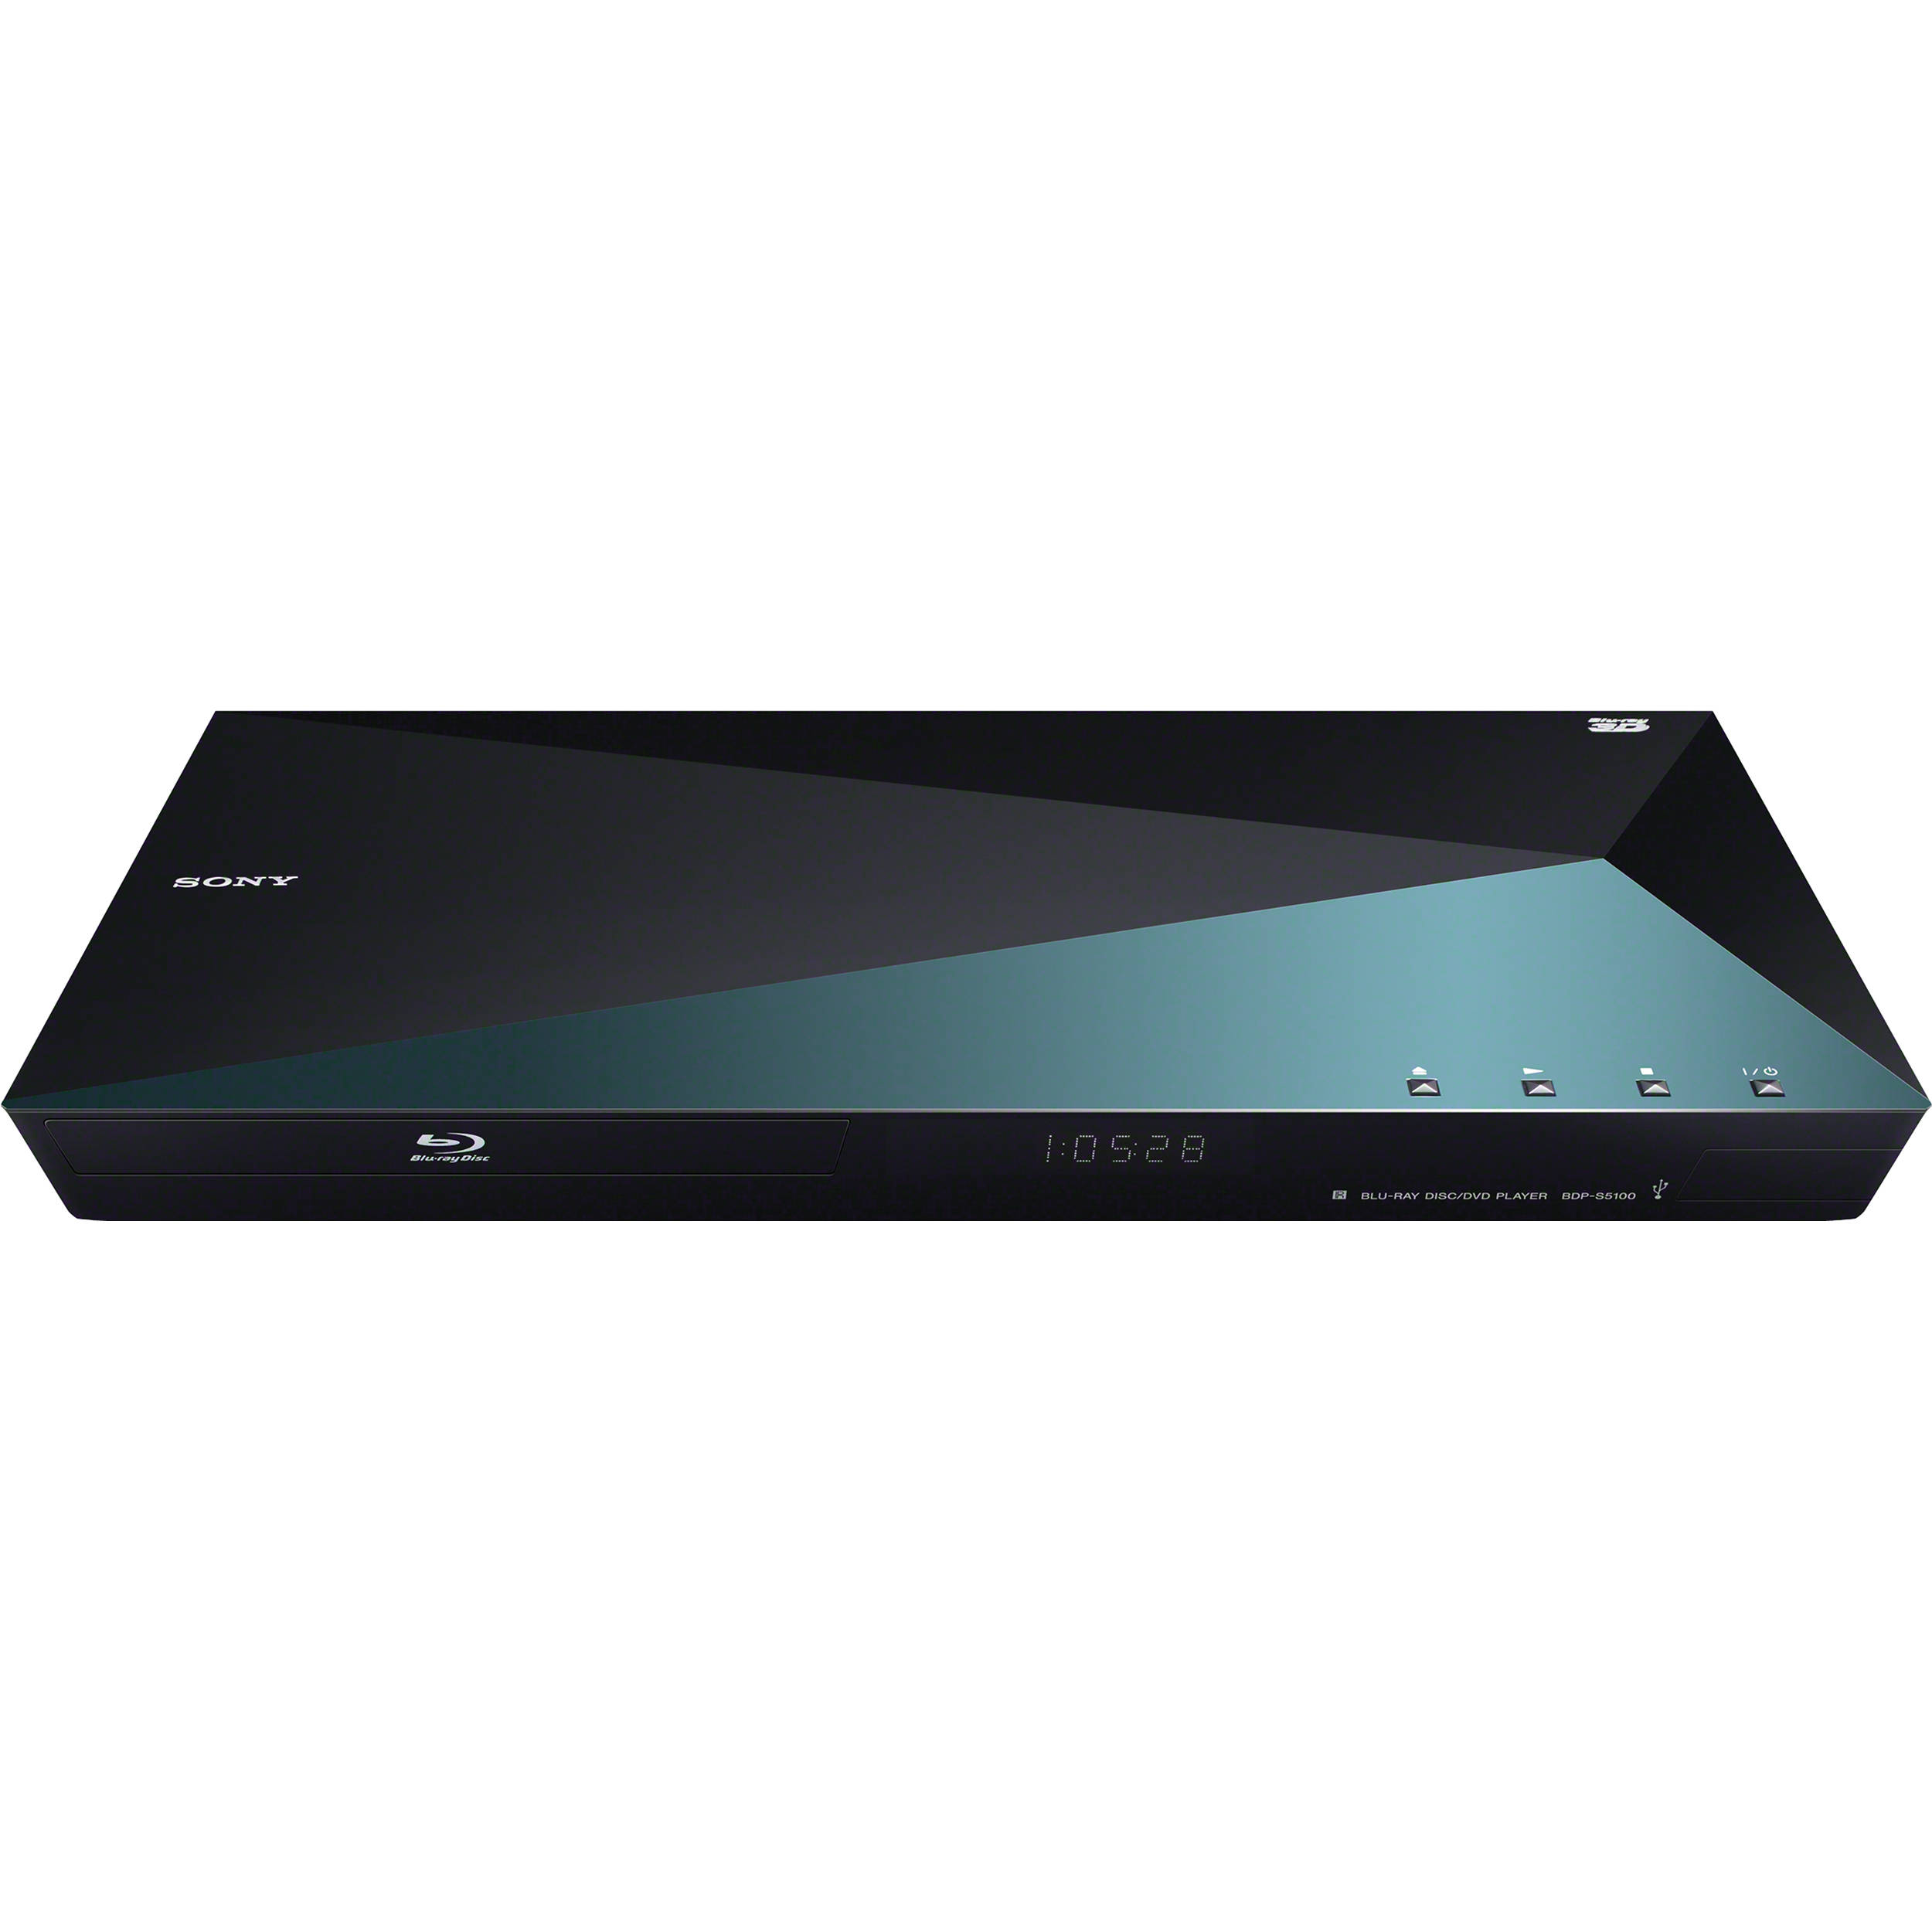 sony bdp s5100 3d blu ray disc player with super wi fi bdp s5100. Black Bedroom Furniture Sets. Home Design Ideas